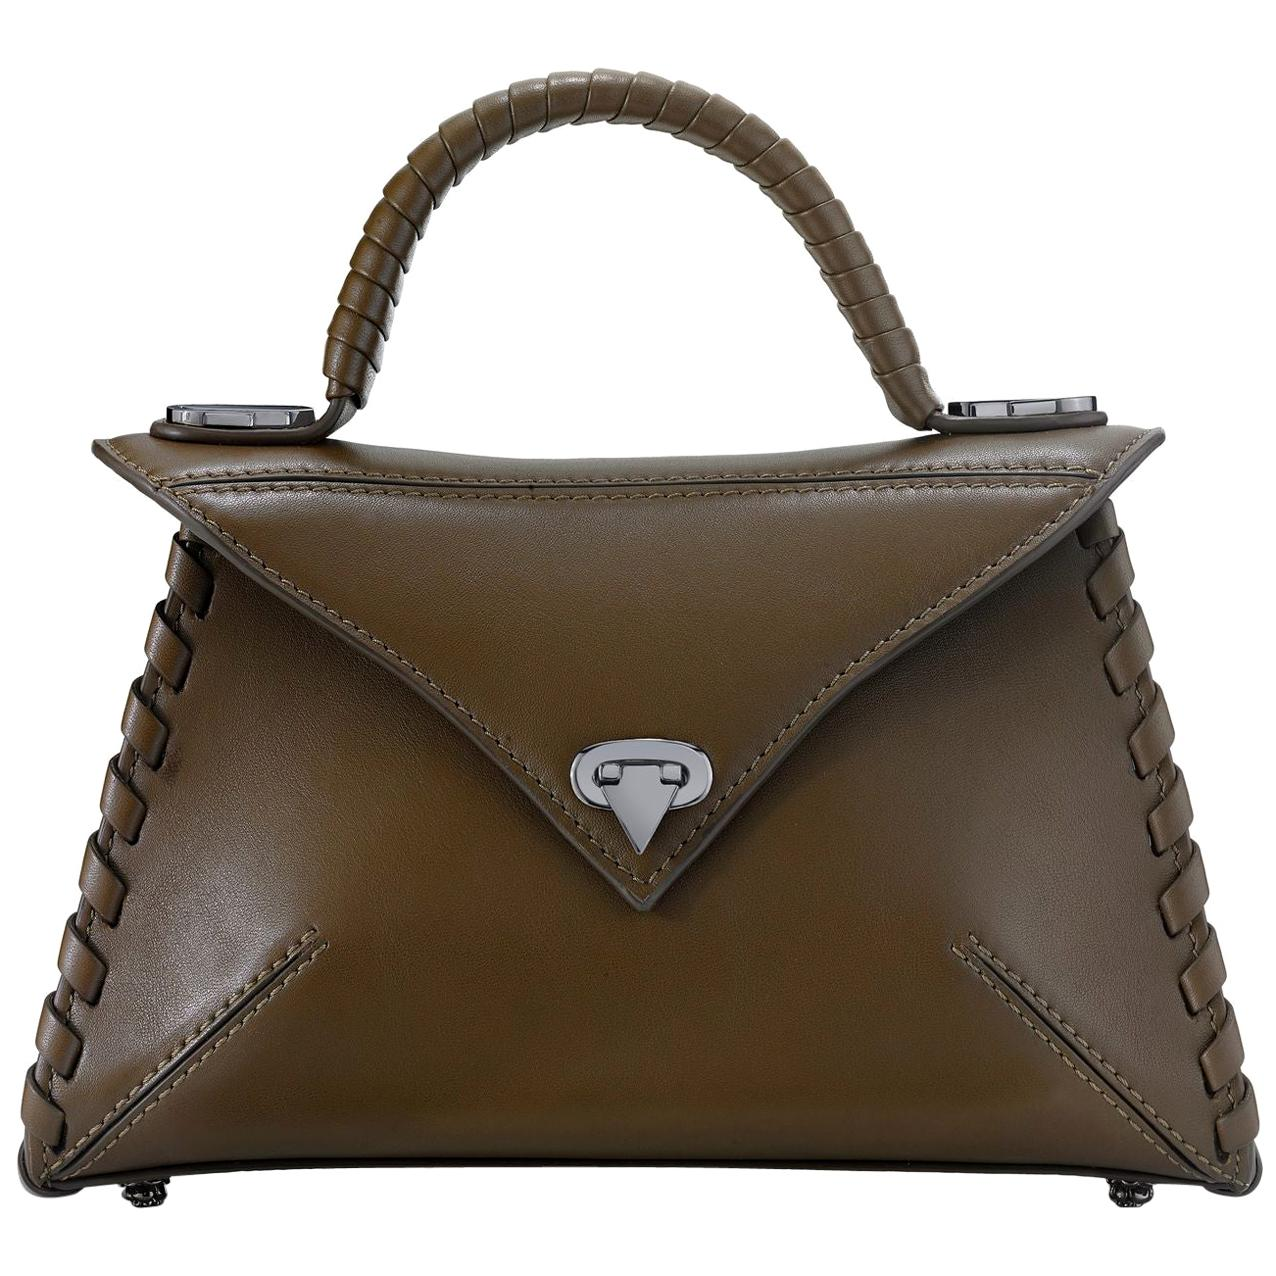 TYLER ELLIS LJ Handbag Small in Olive Green Leather Gunmetal Hardware